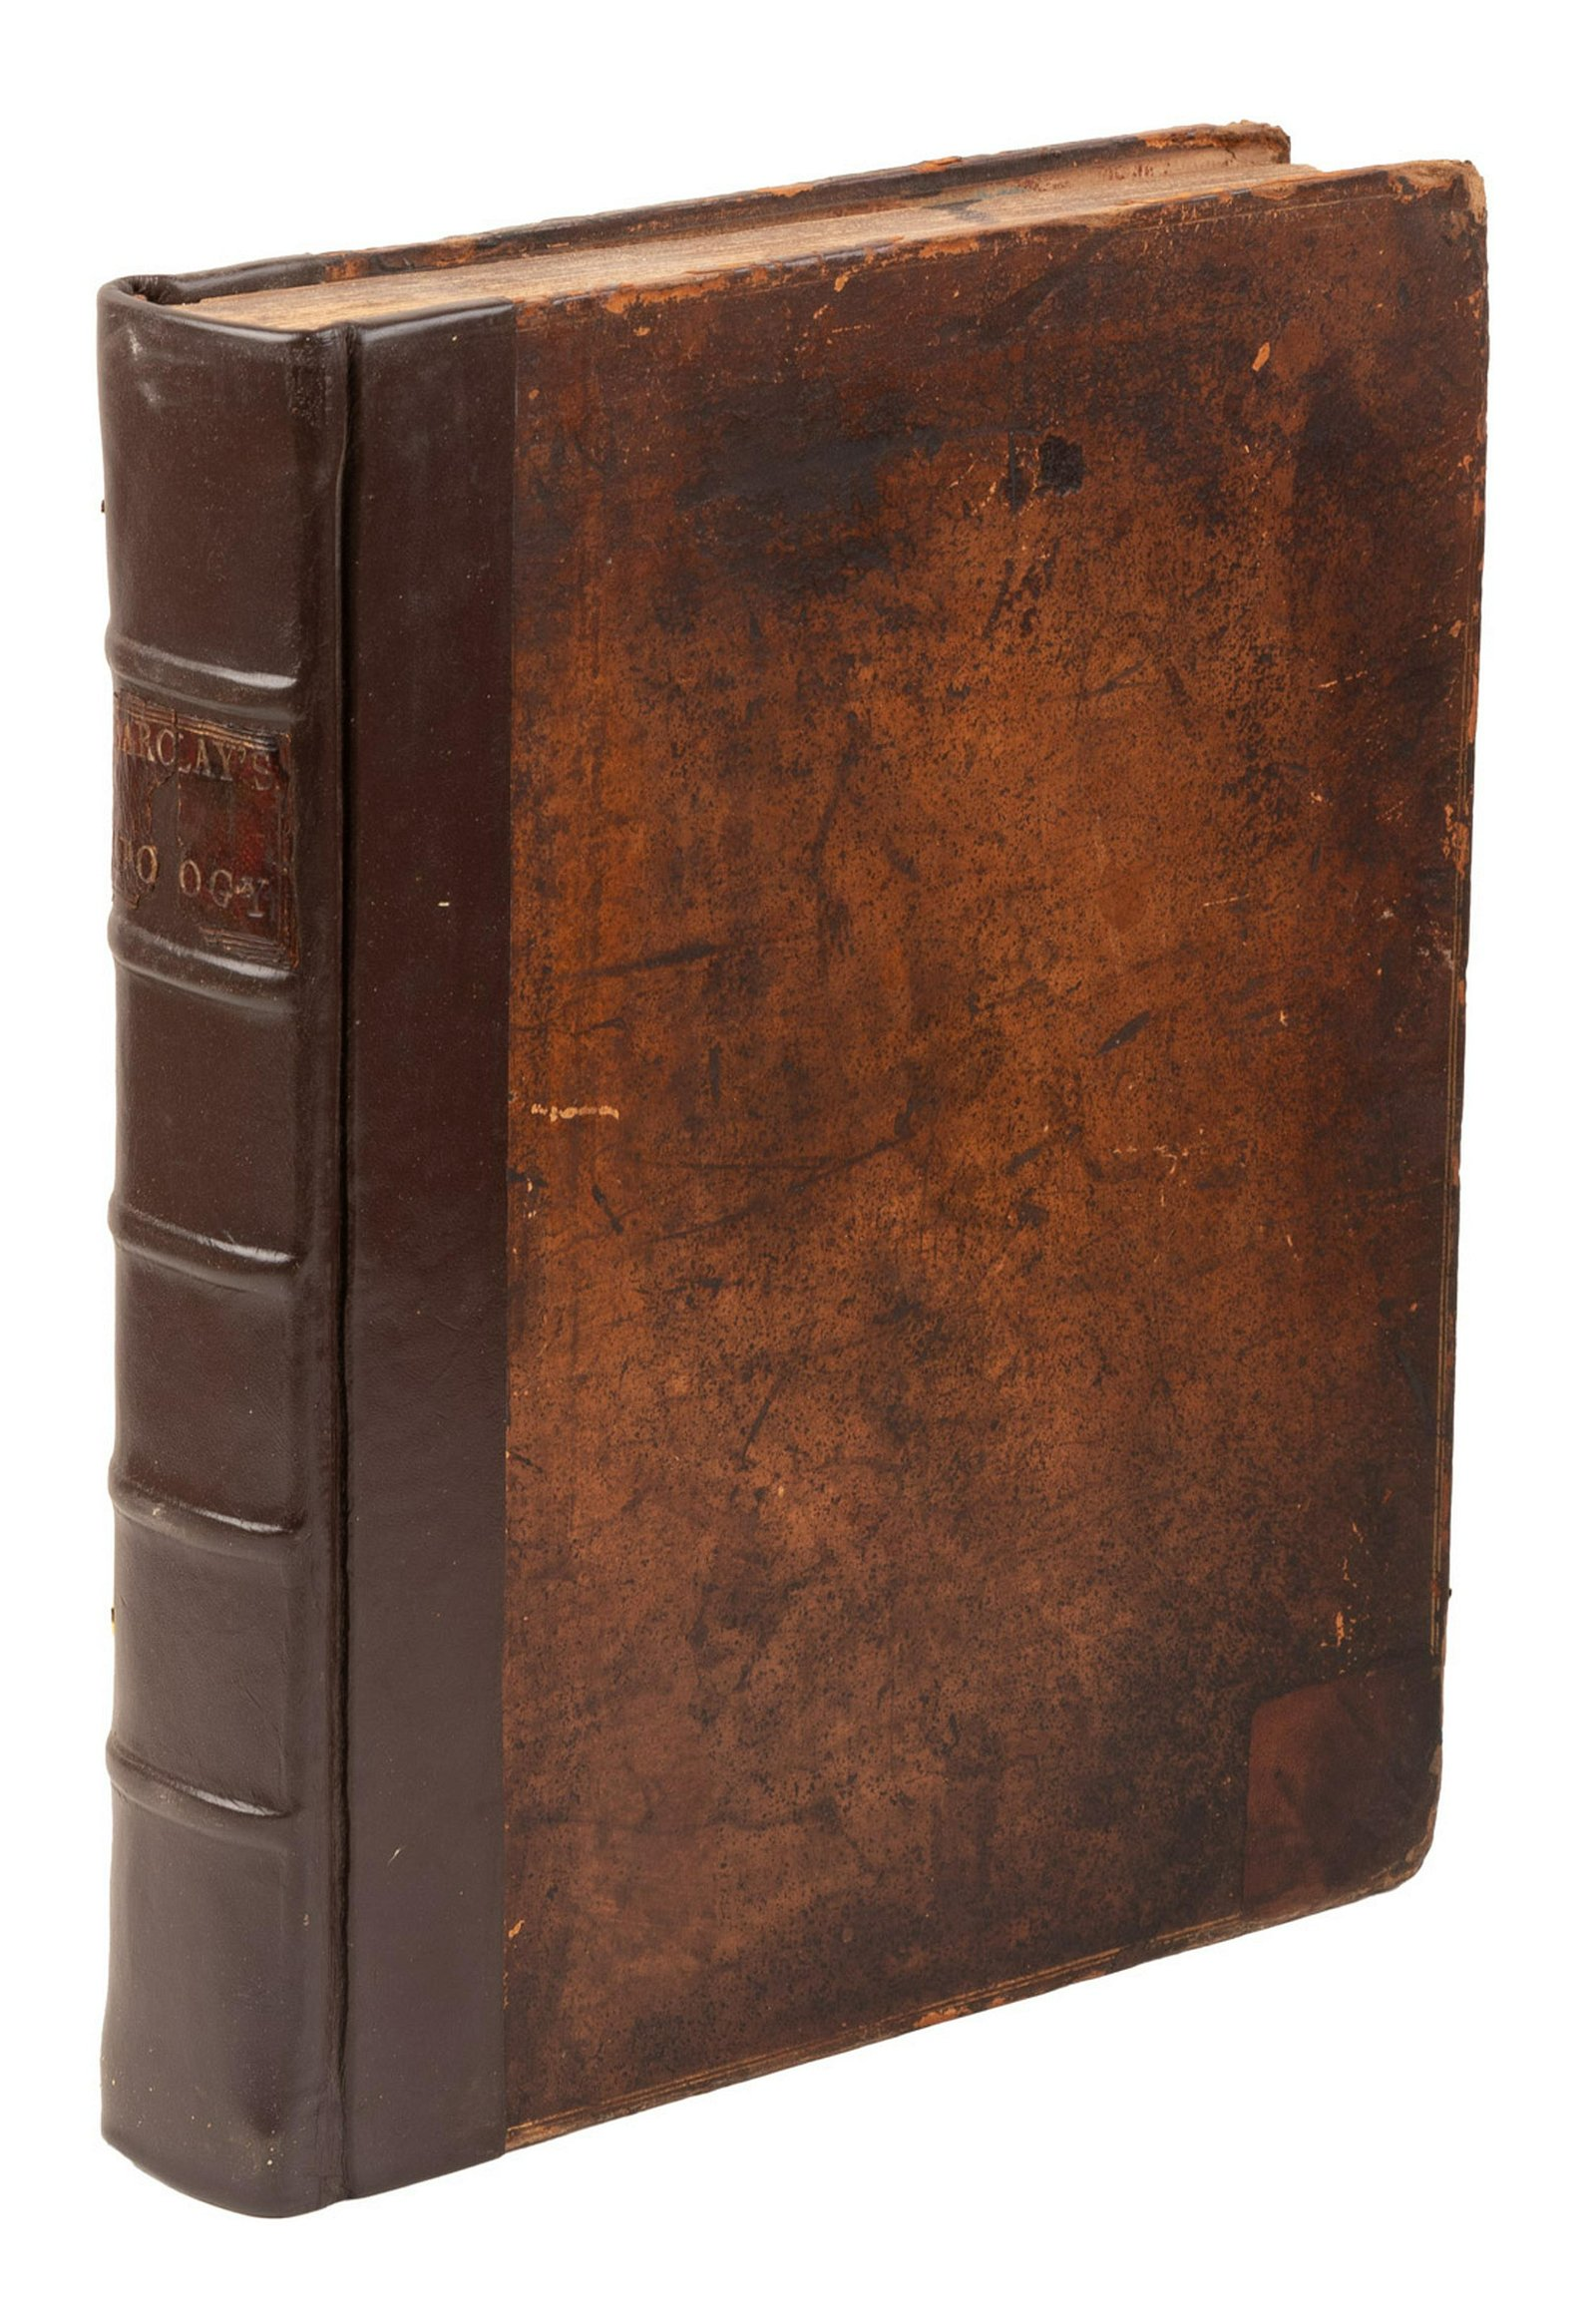 Barclay on the Quakers, 1765 Baskerville edition